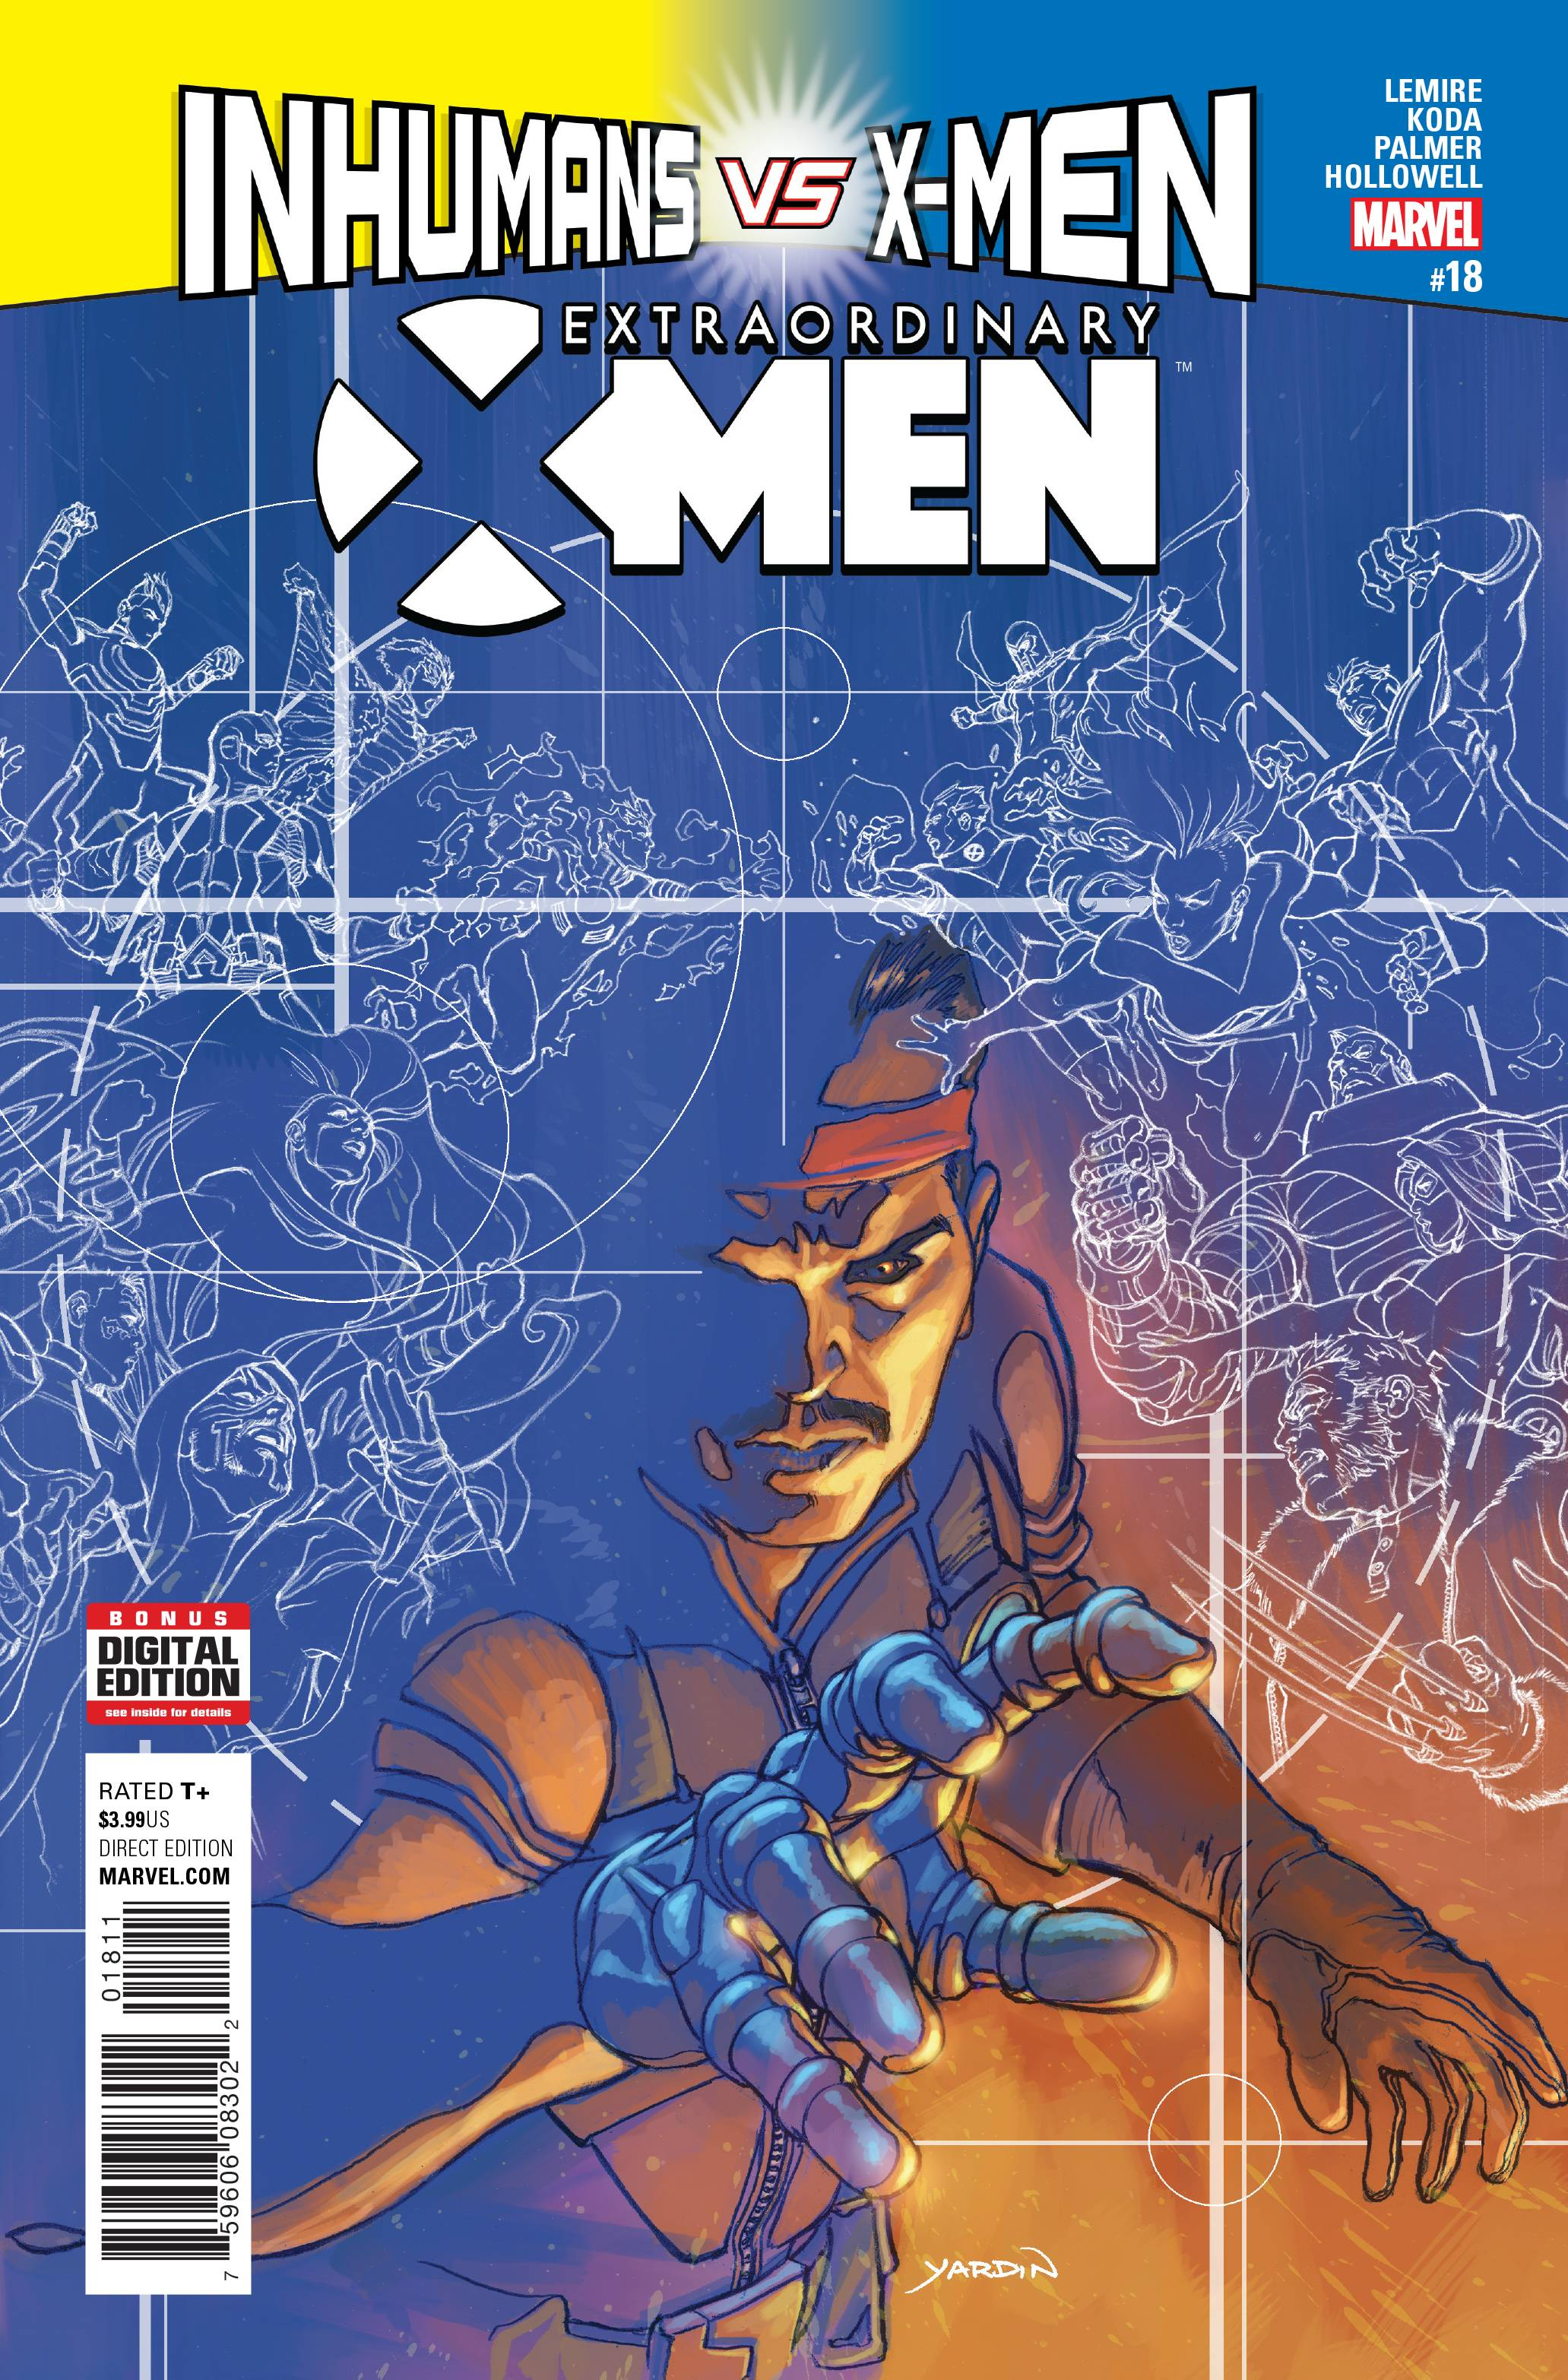 EXTRAORDINARY X-MEN #18 IVX